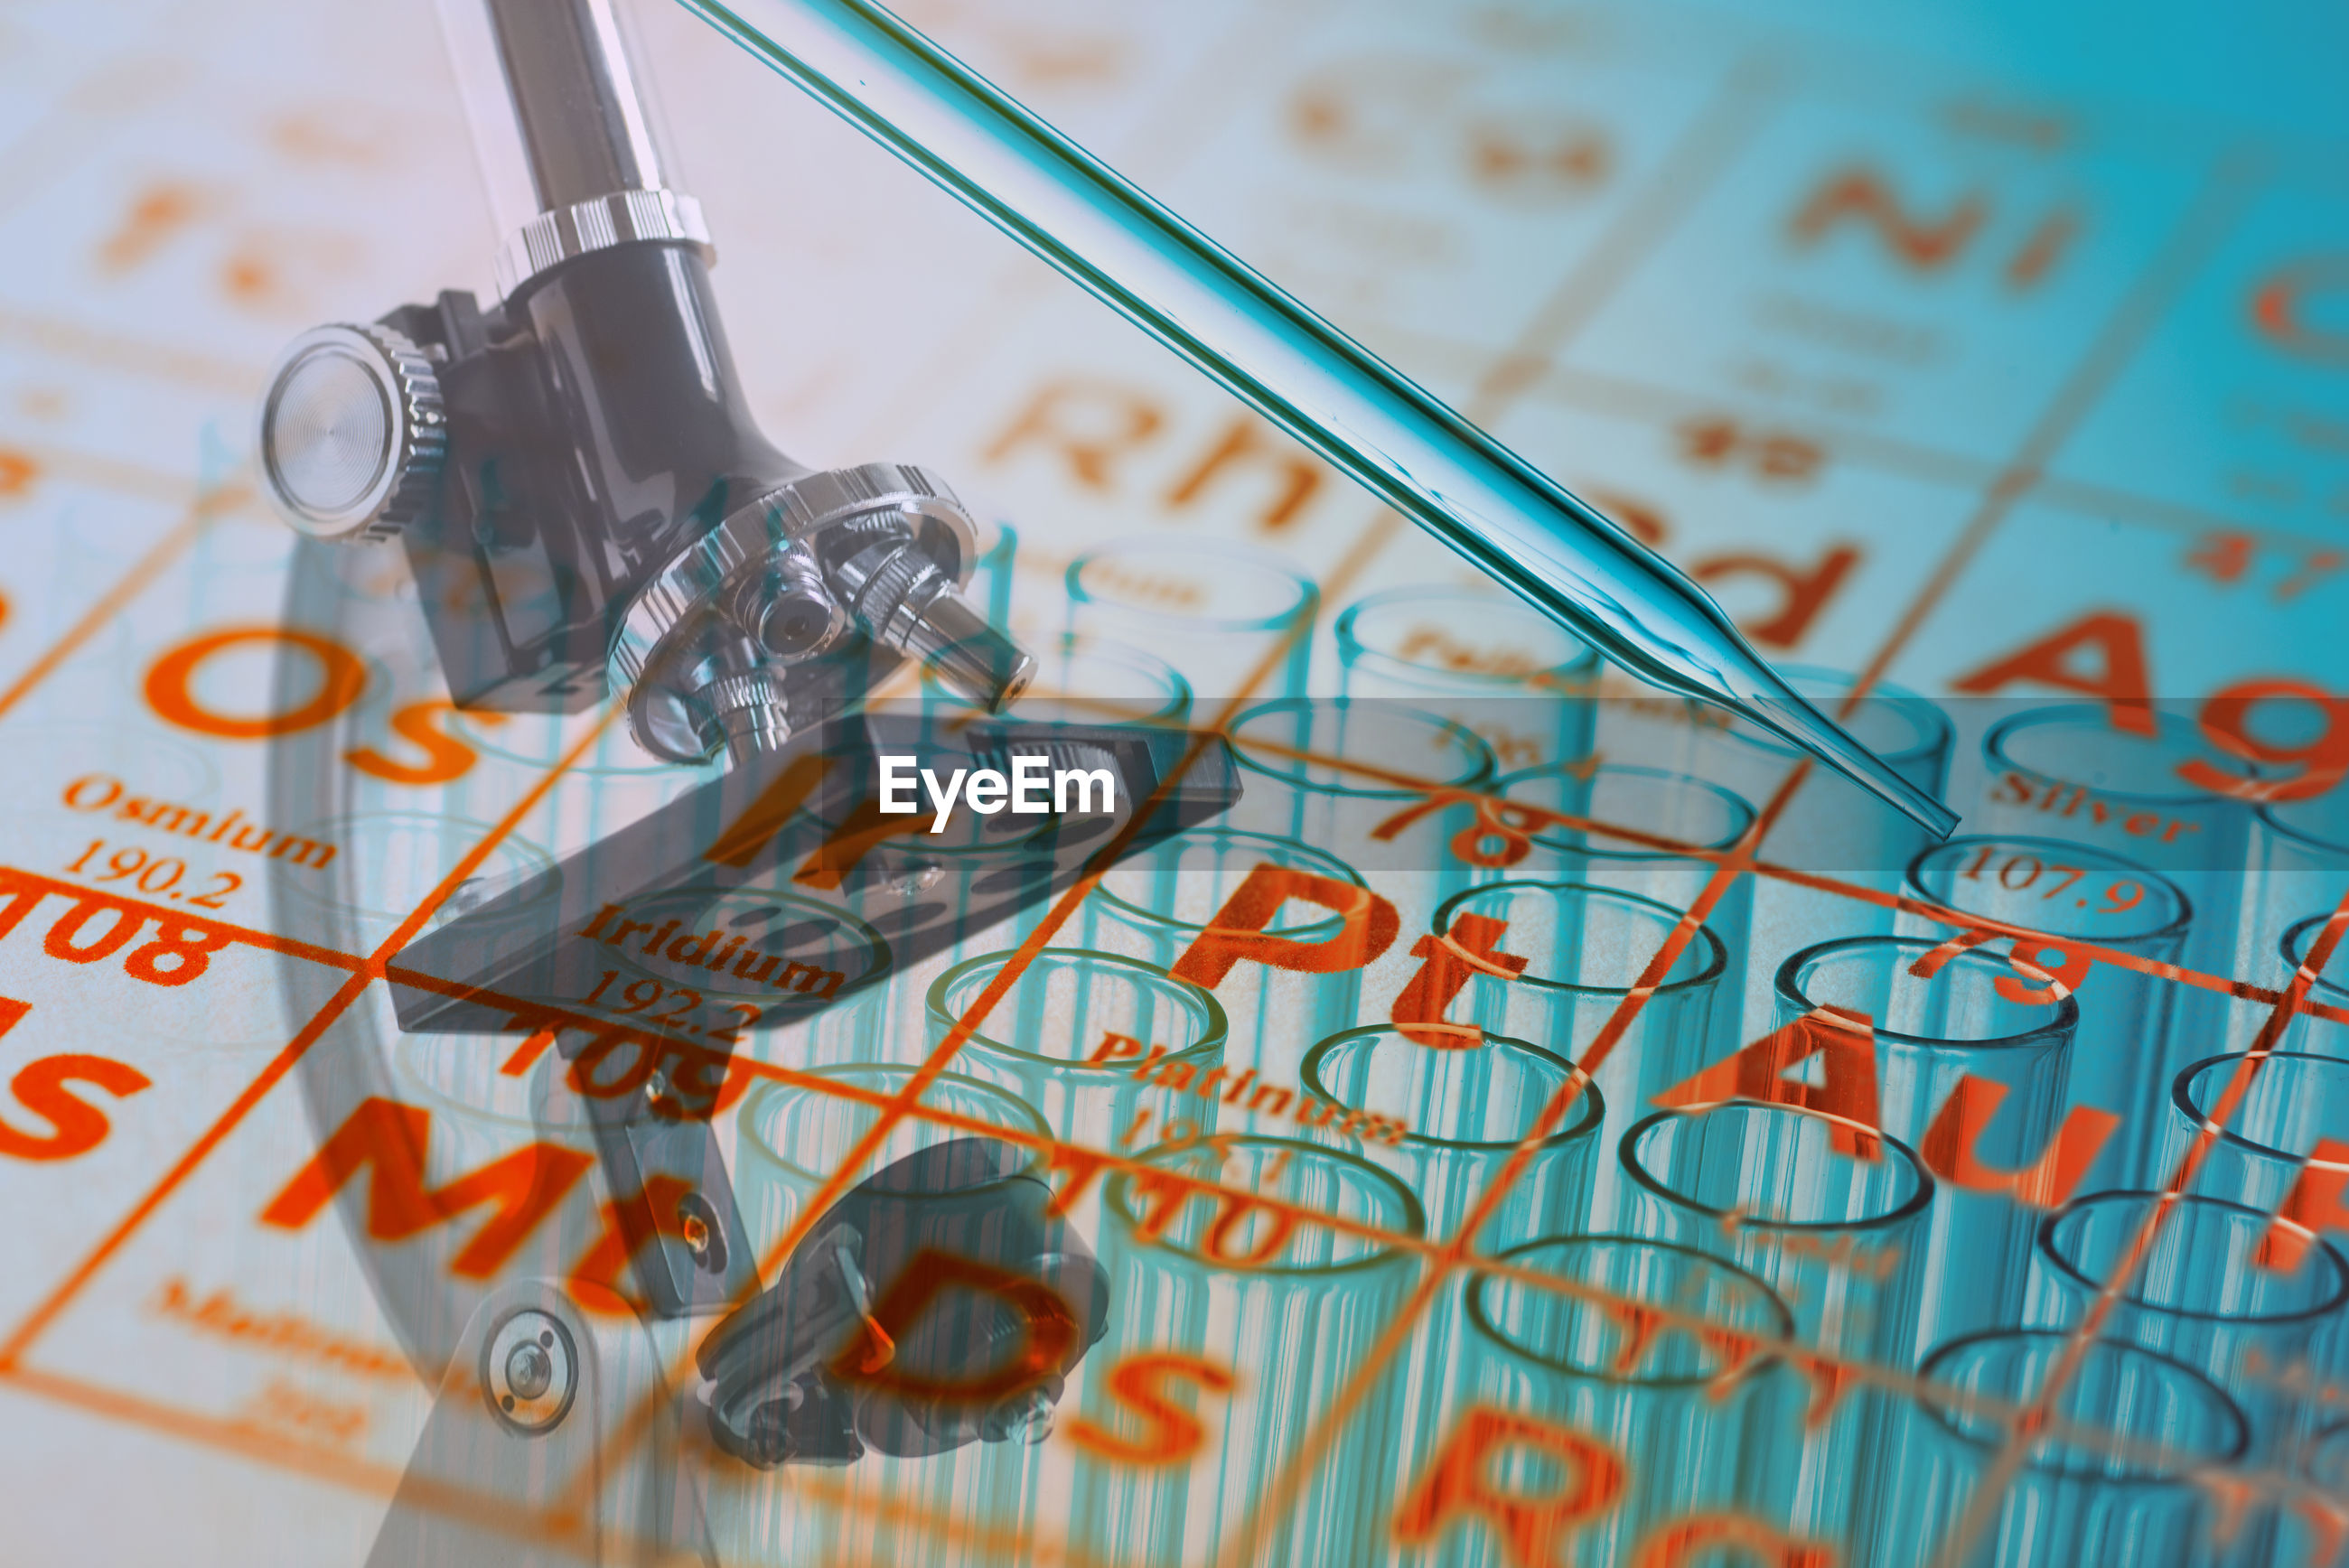 Digital composite image of periodic table over microscope and test tubes